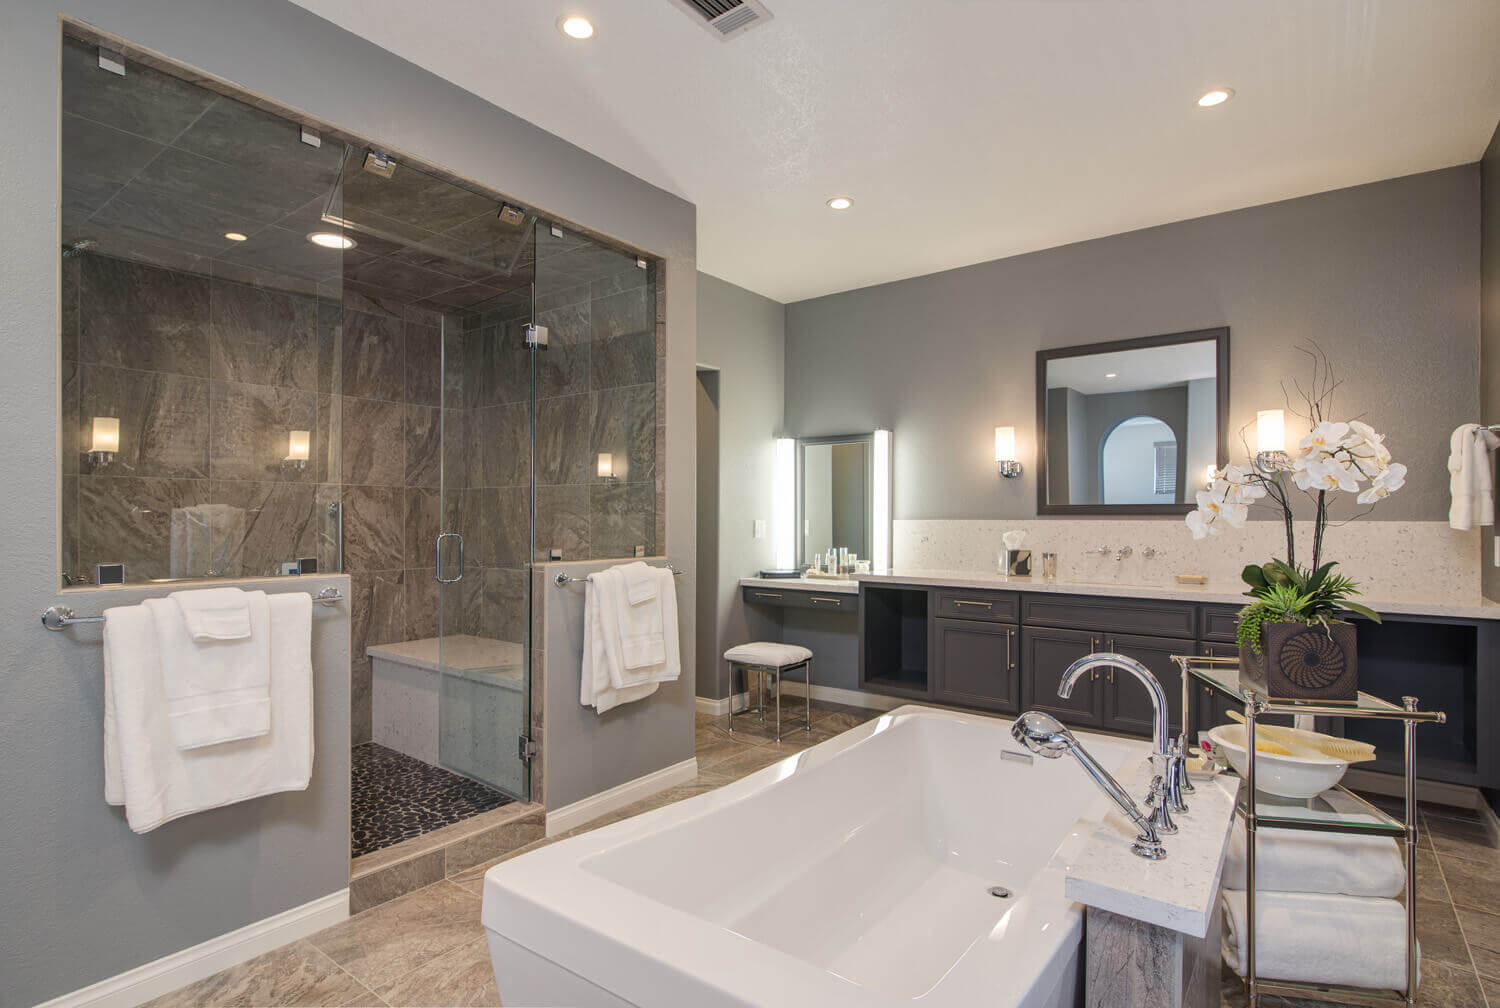 2018 bathroom renovation cost get prices for the most - How much for small bathroom remodel ...